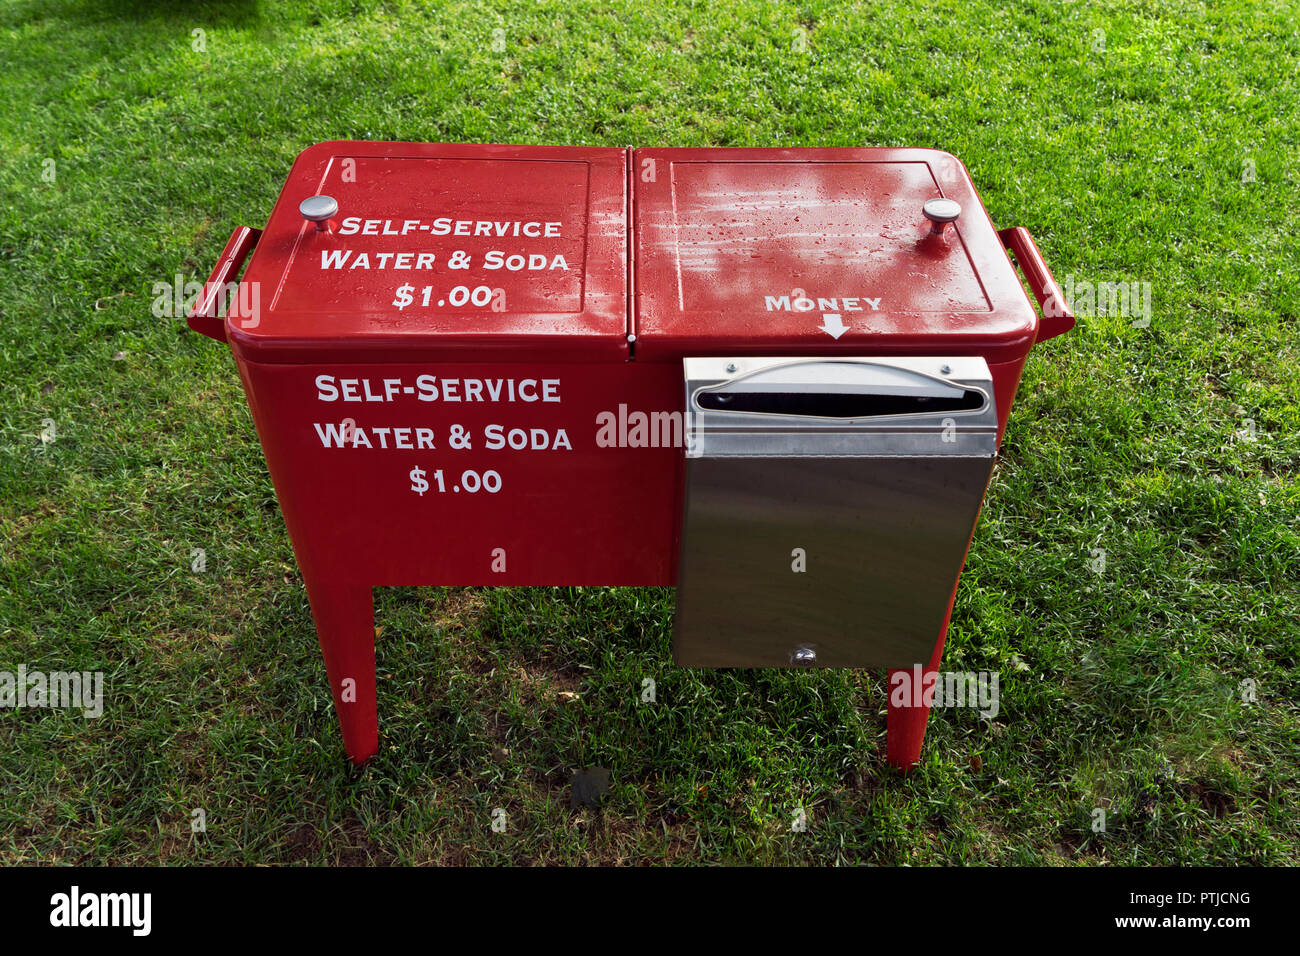 Red self-service water and soda dispenser. - Stock Image